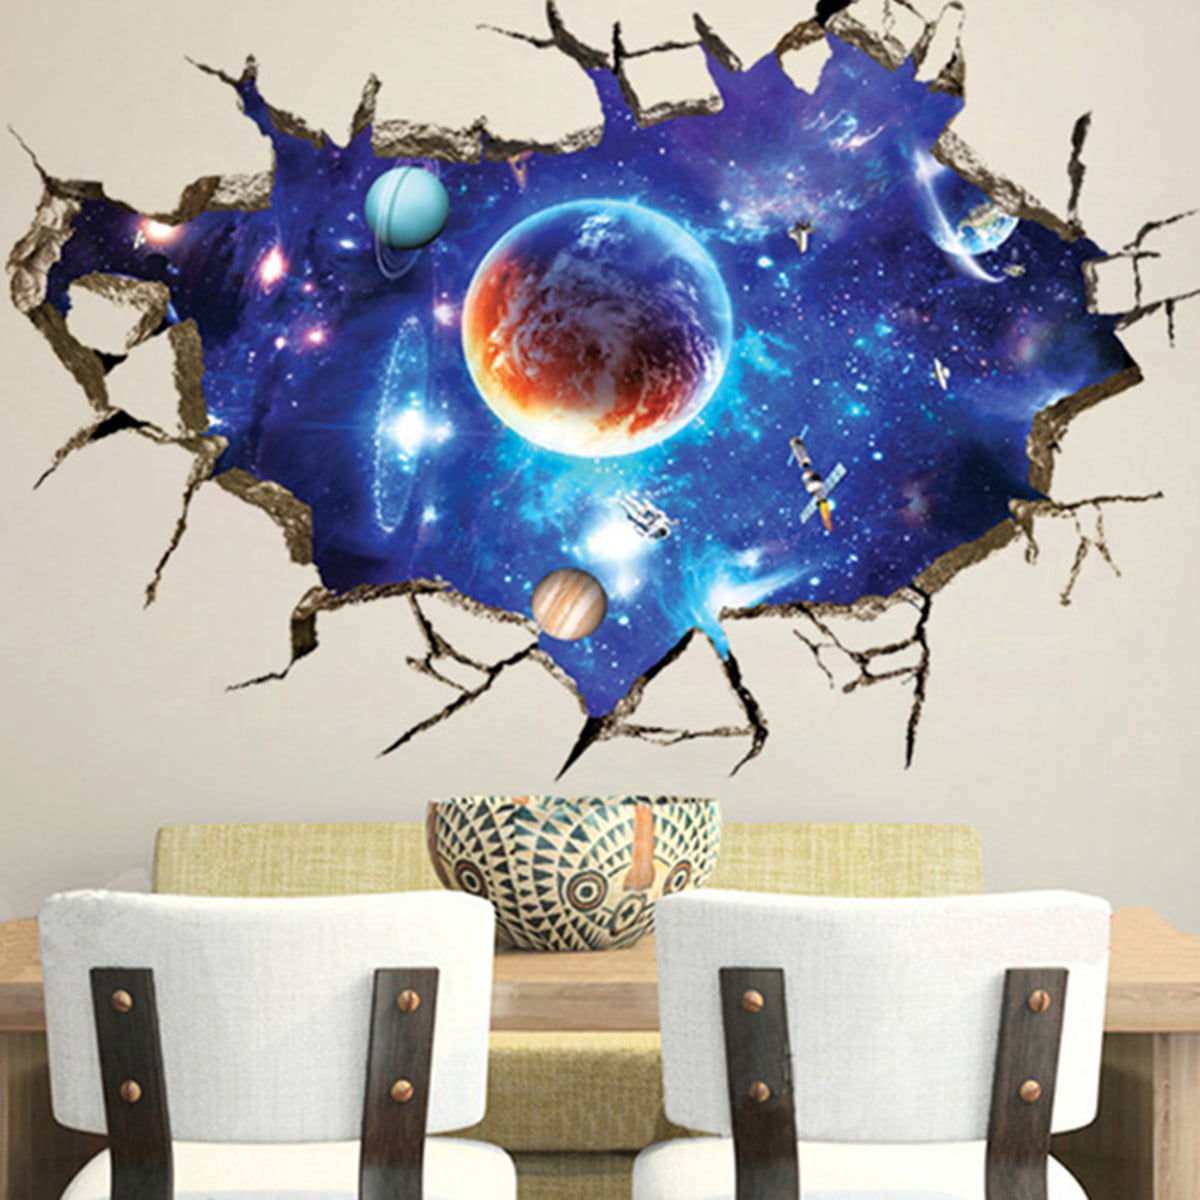 3d Floor Wall Stickers Planet Outer Space Children Bedroom Living Room Wall Decals Sticker Home Decoration Removable Walmart Com Walmart Com